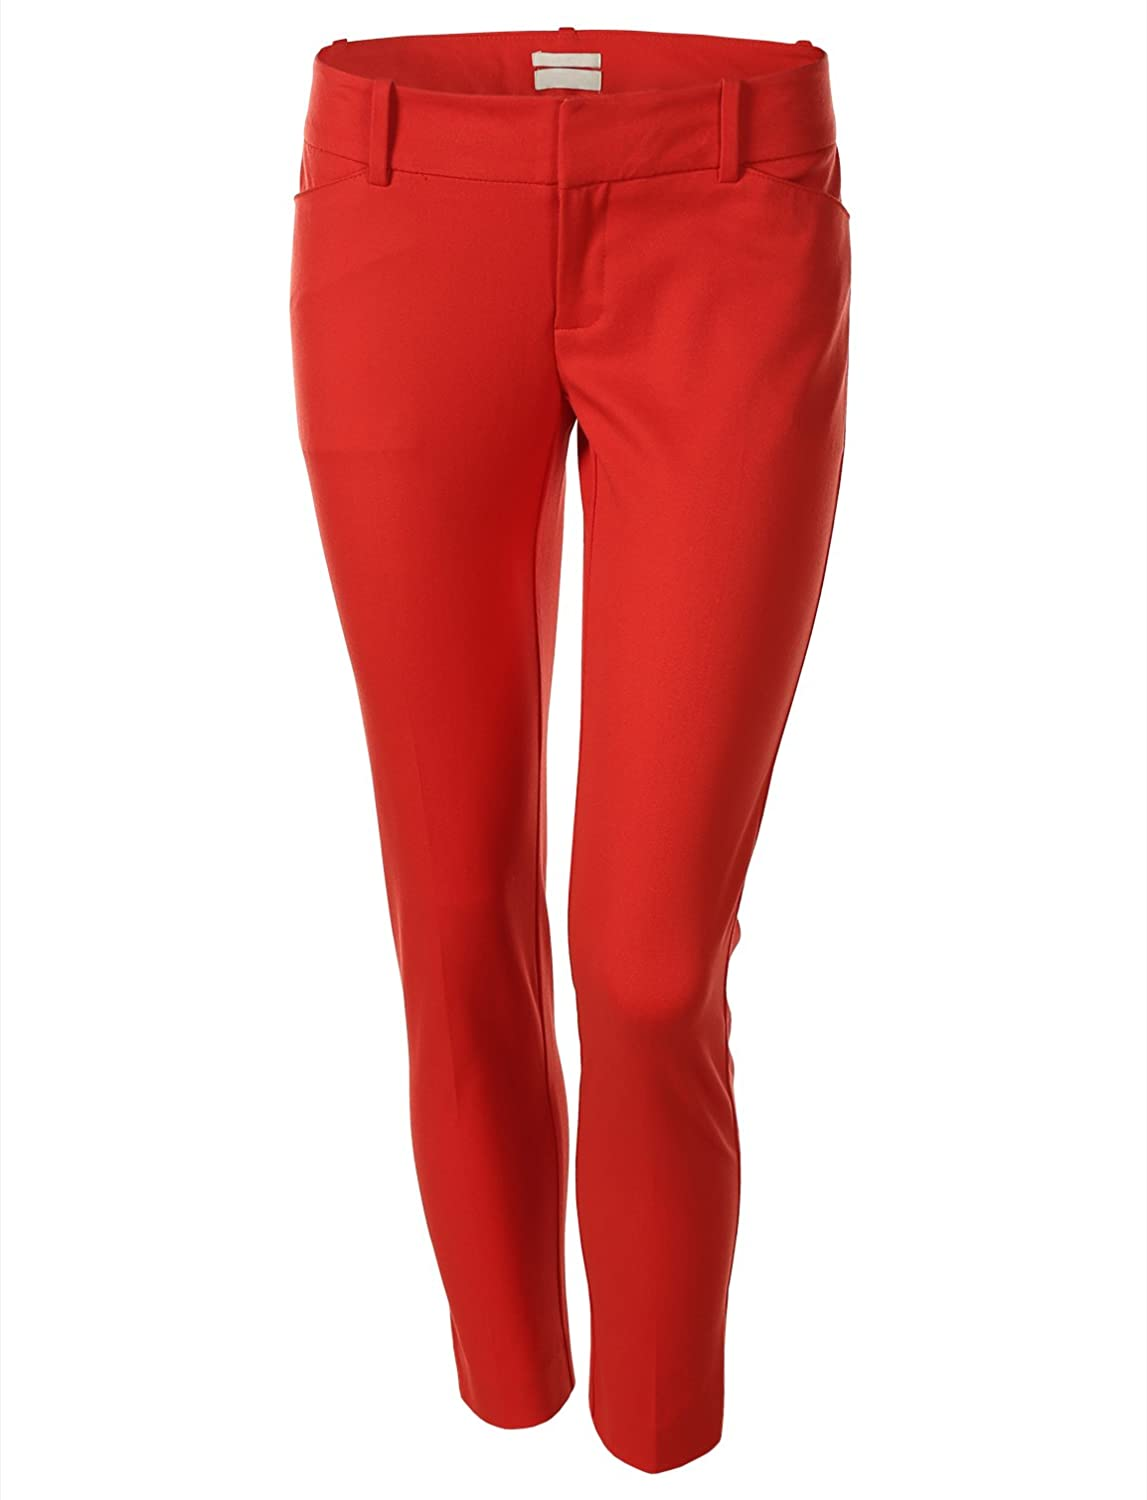 7Encounter Flat Front Skinny Leg Ankle Pants